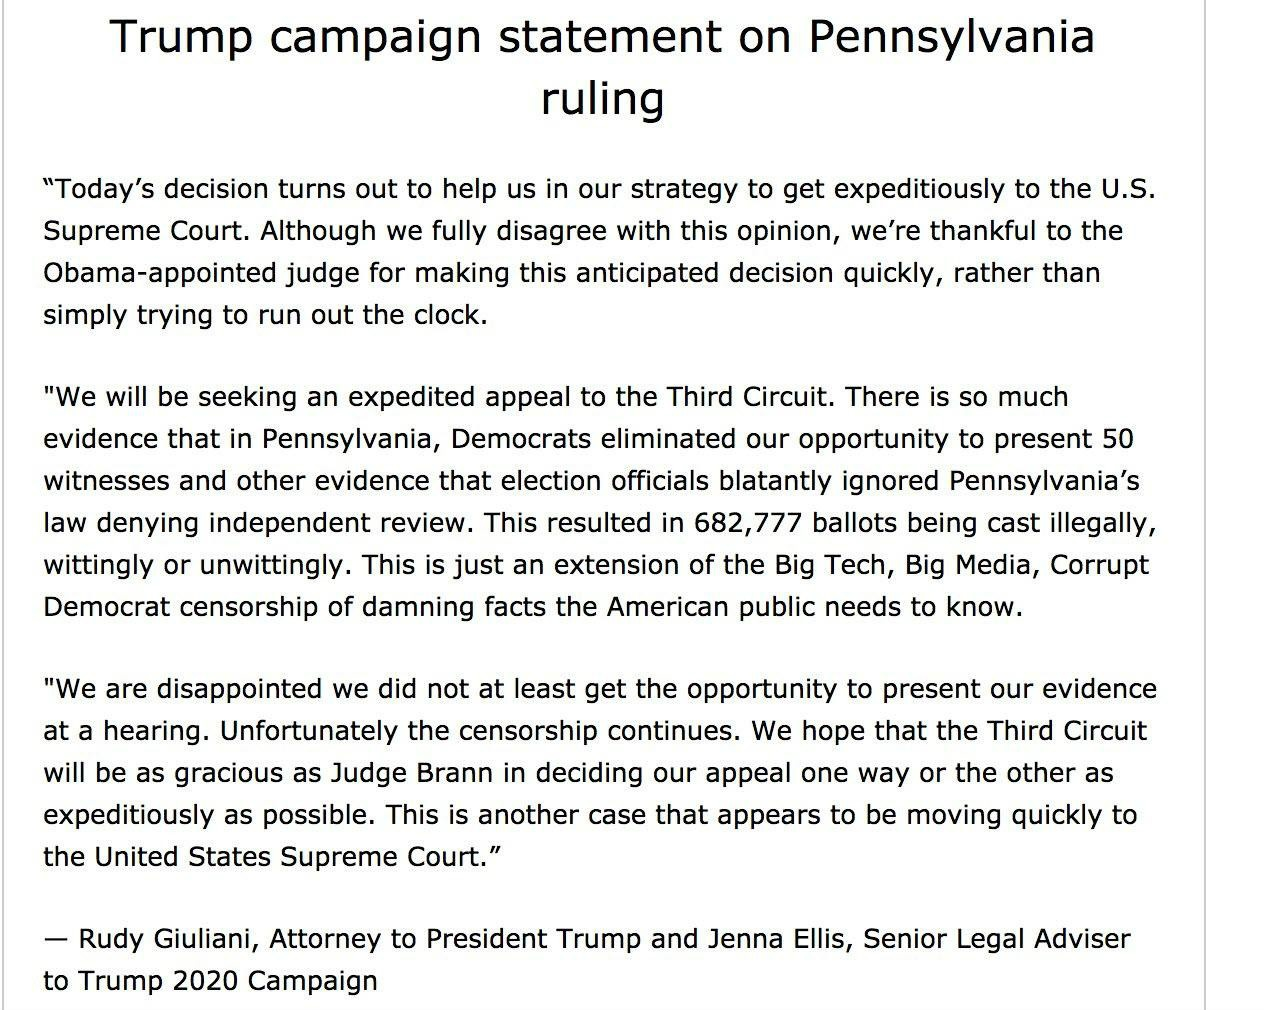 Trump campaign statement on Pennsylvania ruling